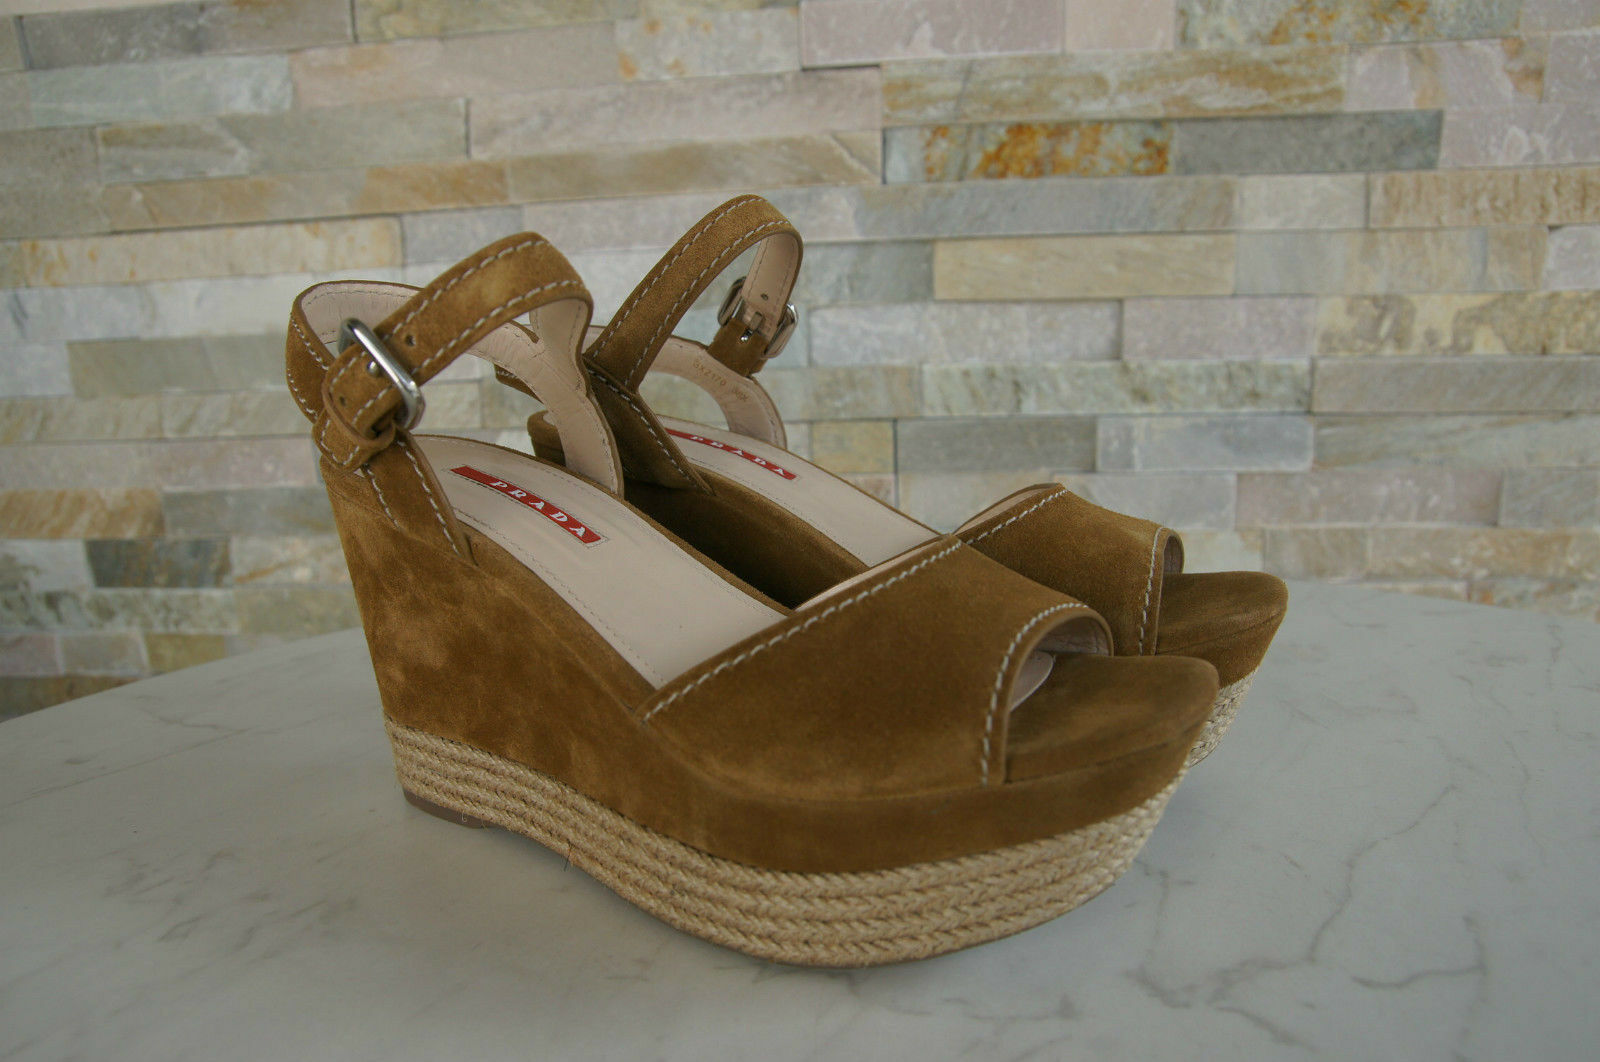 Plateforme S Chaussures 40 Sisal Prada T Shoes 5 Caramel Neuf qFxOpAP